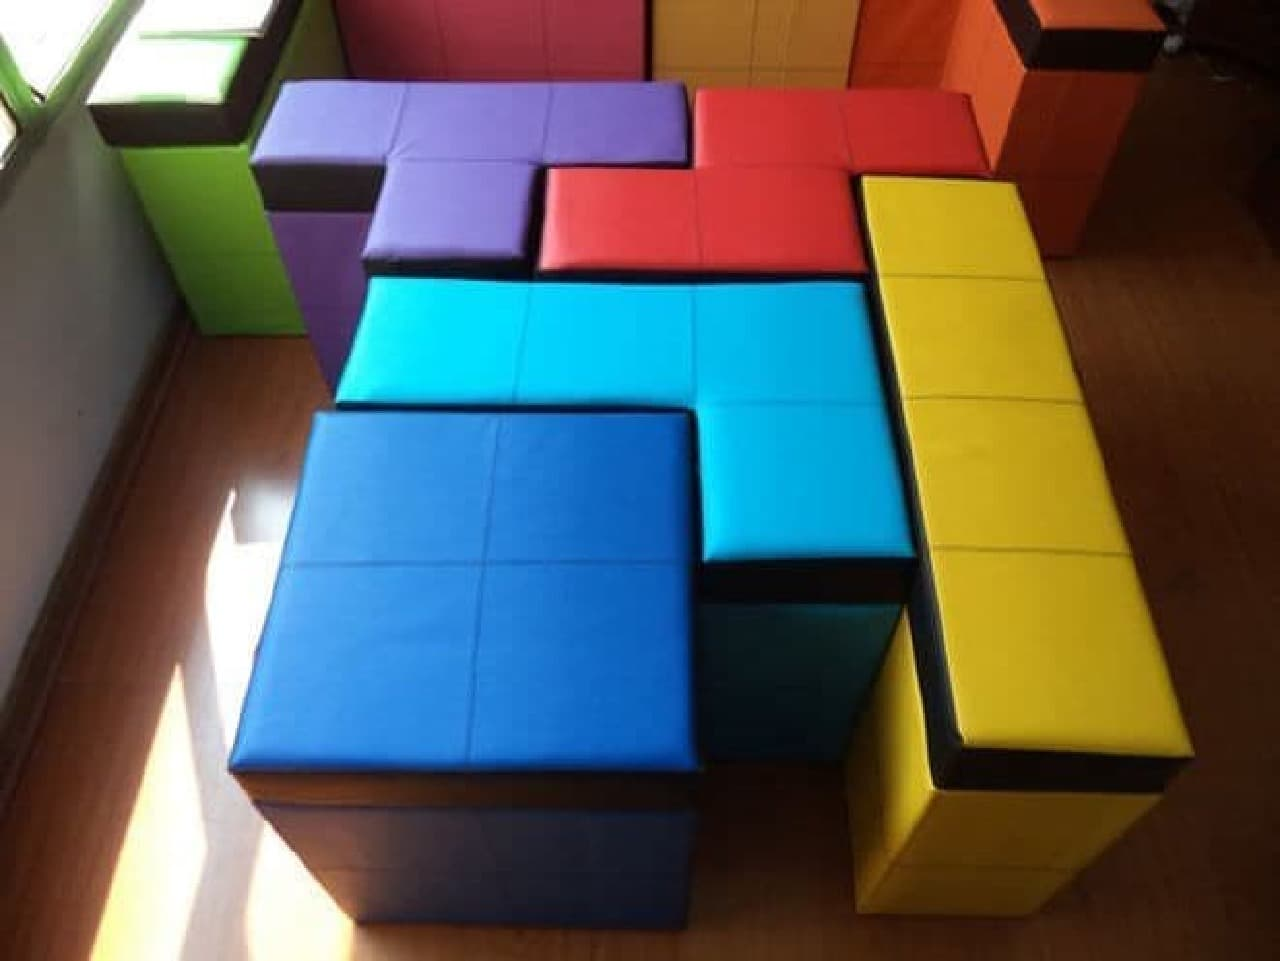 「Tetris-shaped Storage Benches」 販売